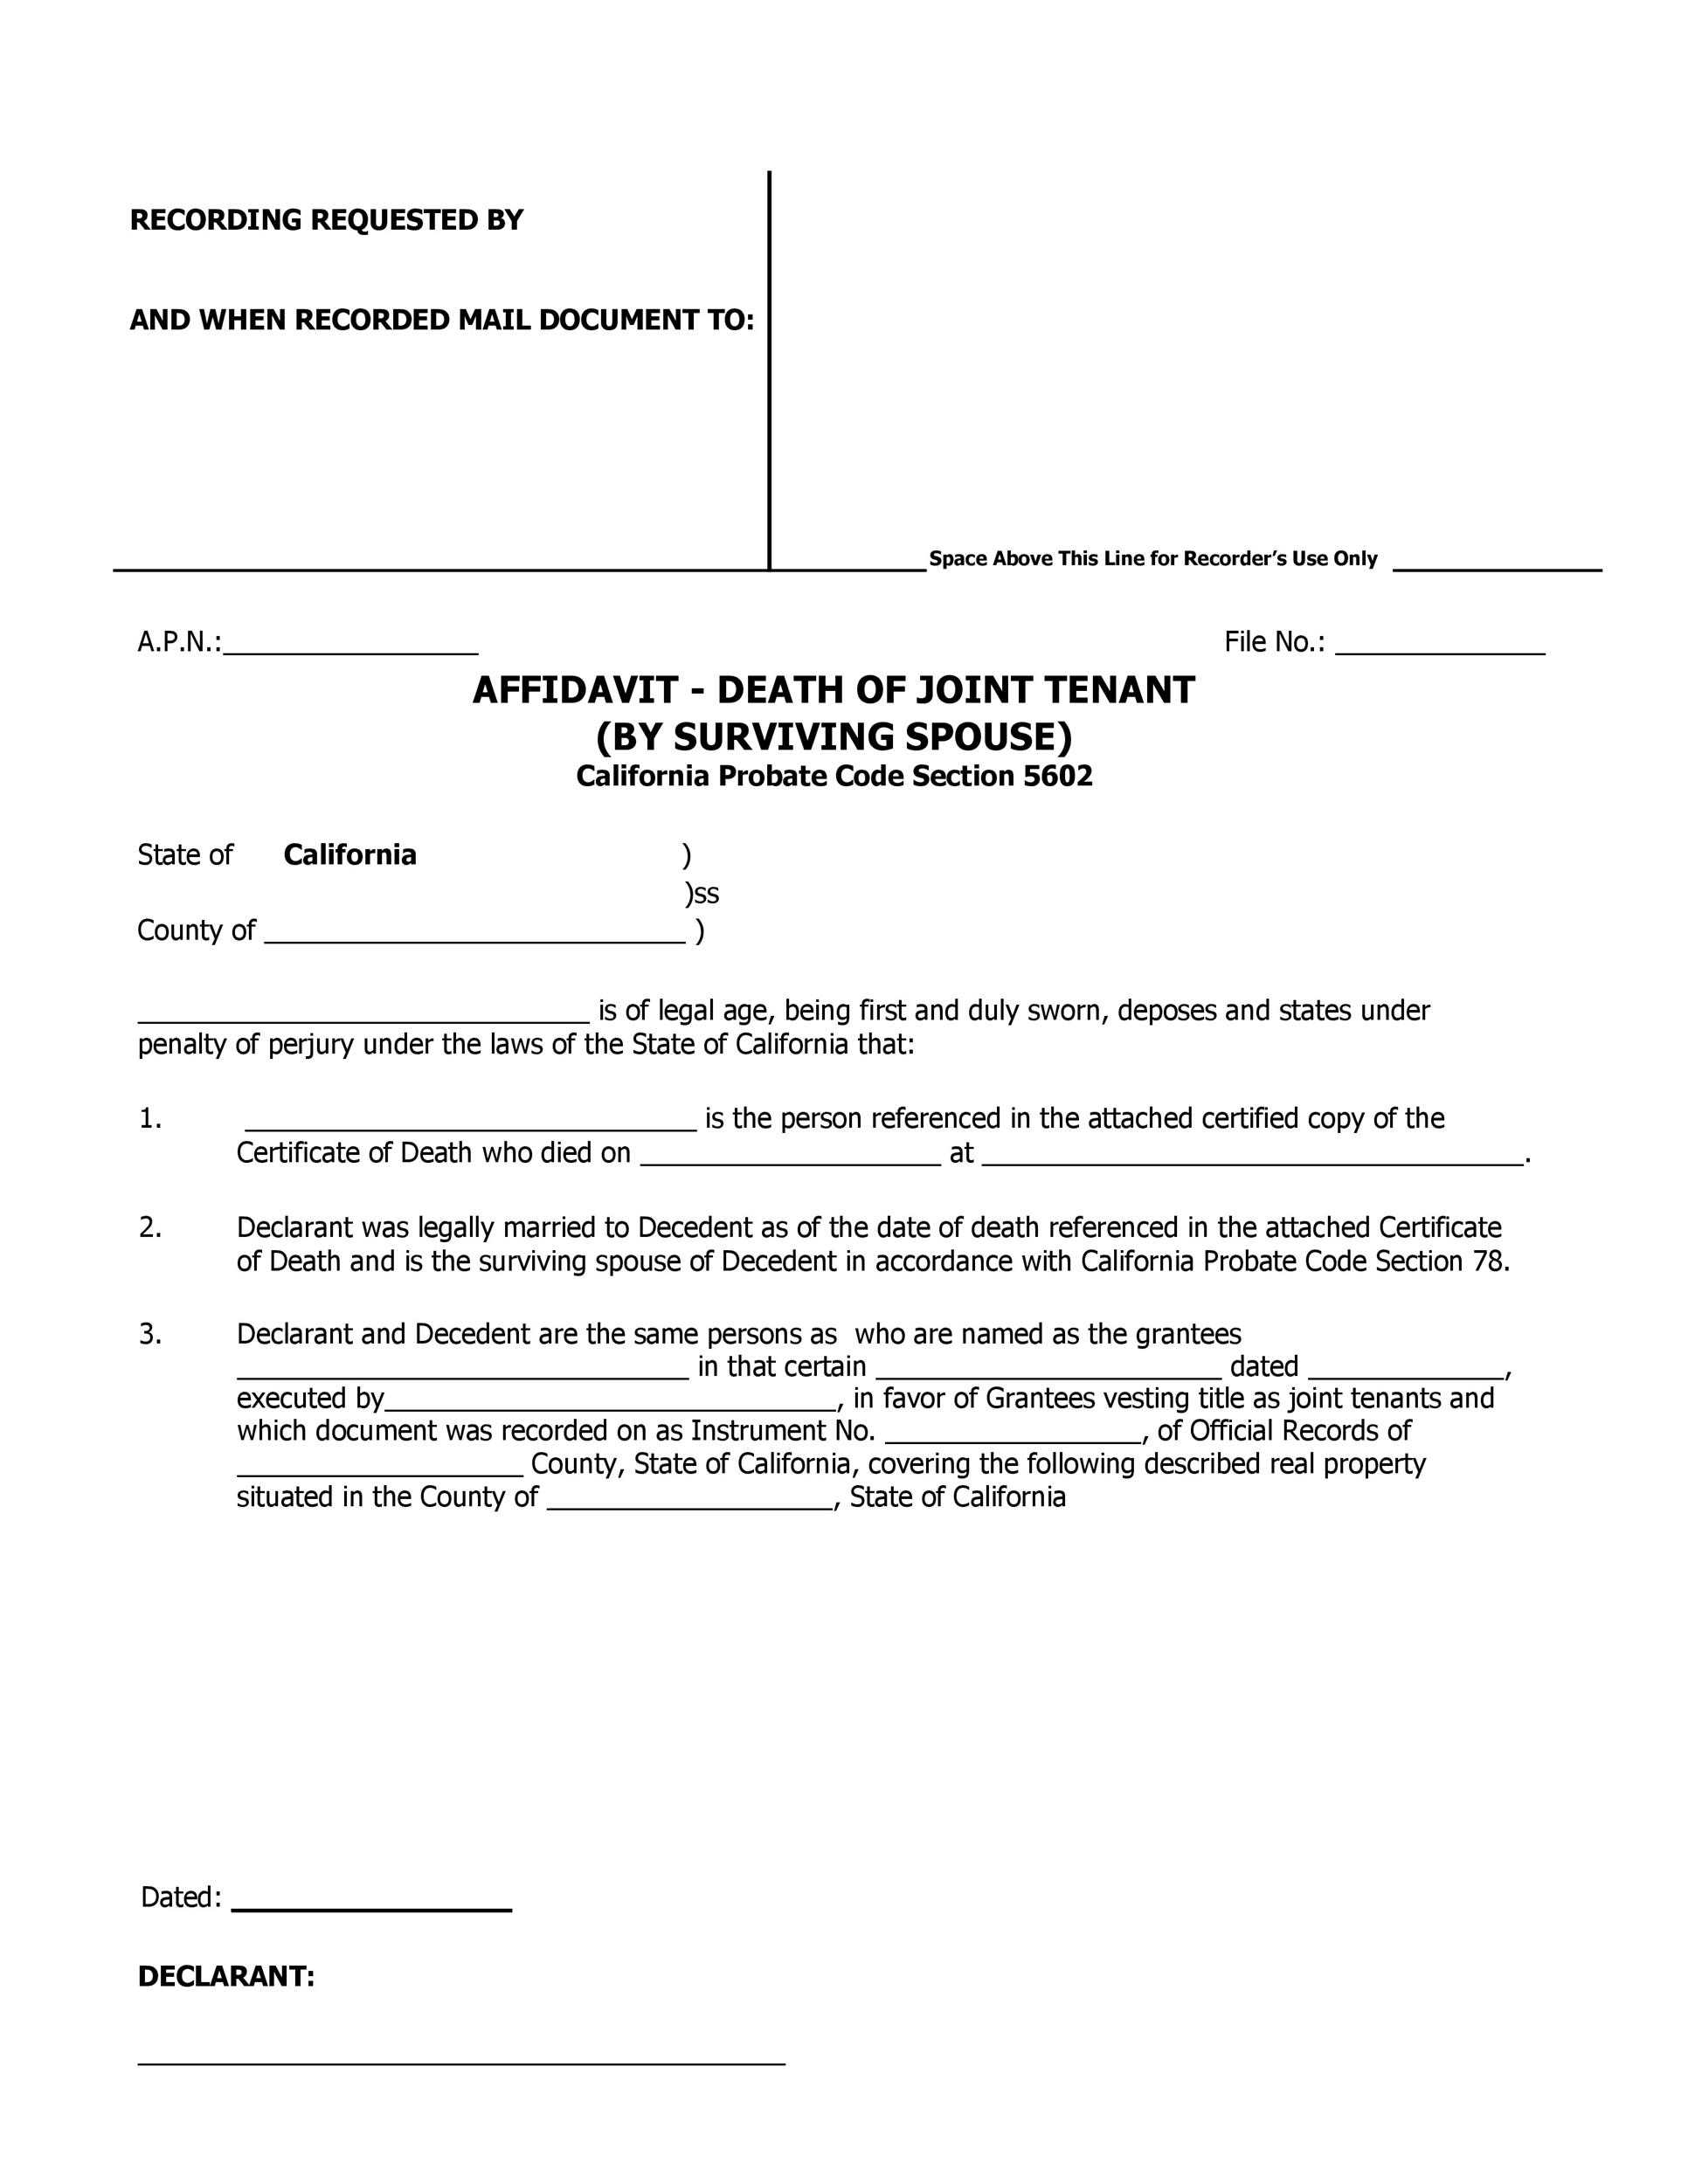 50 Editable Affidavit Of Death Forms All States